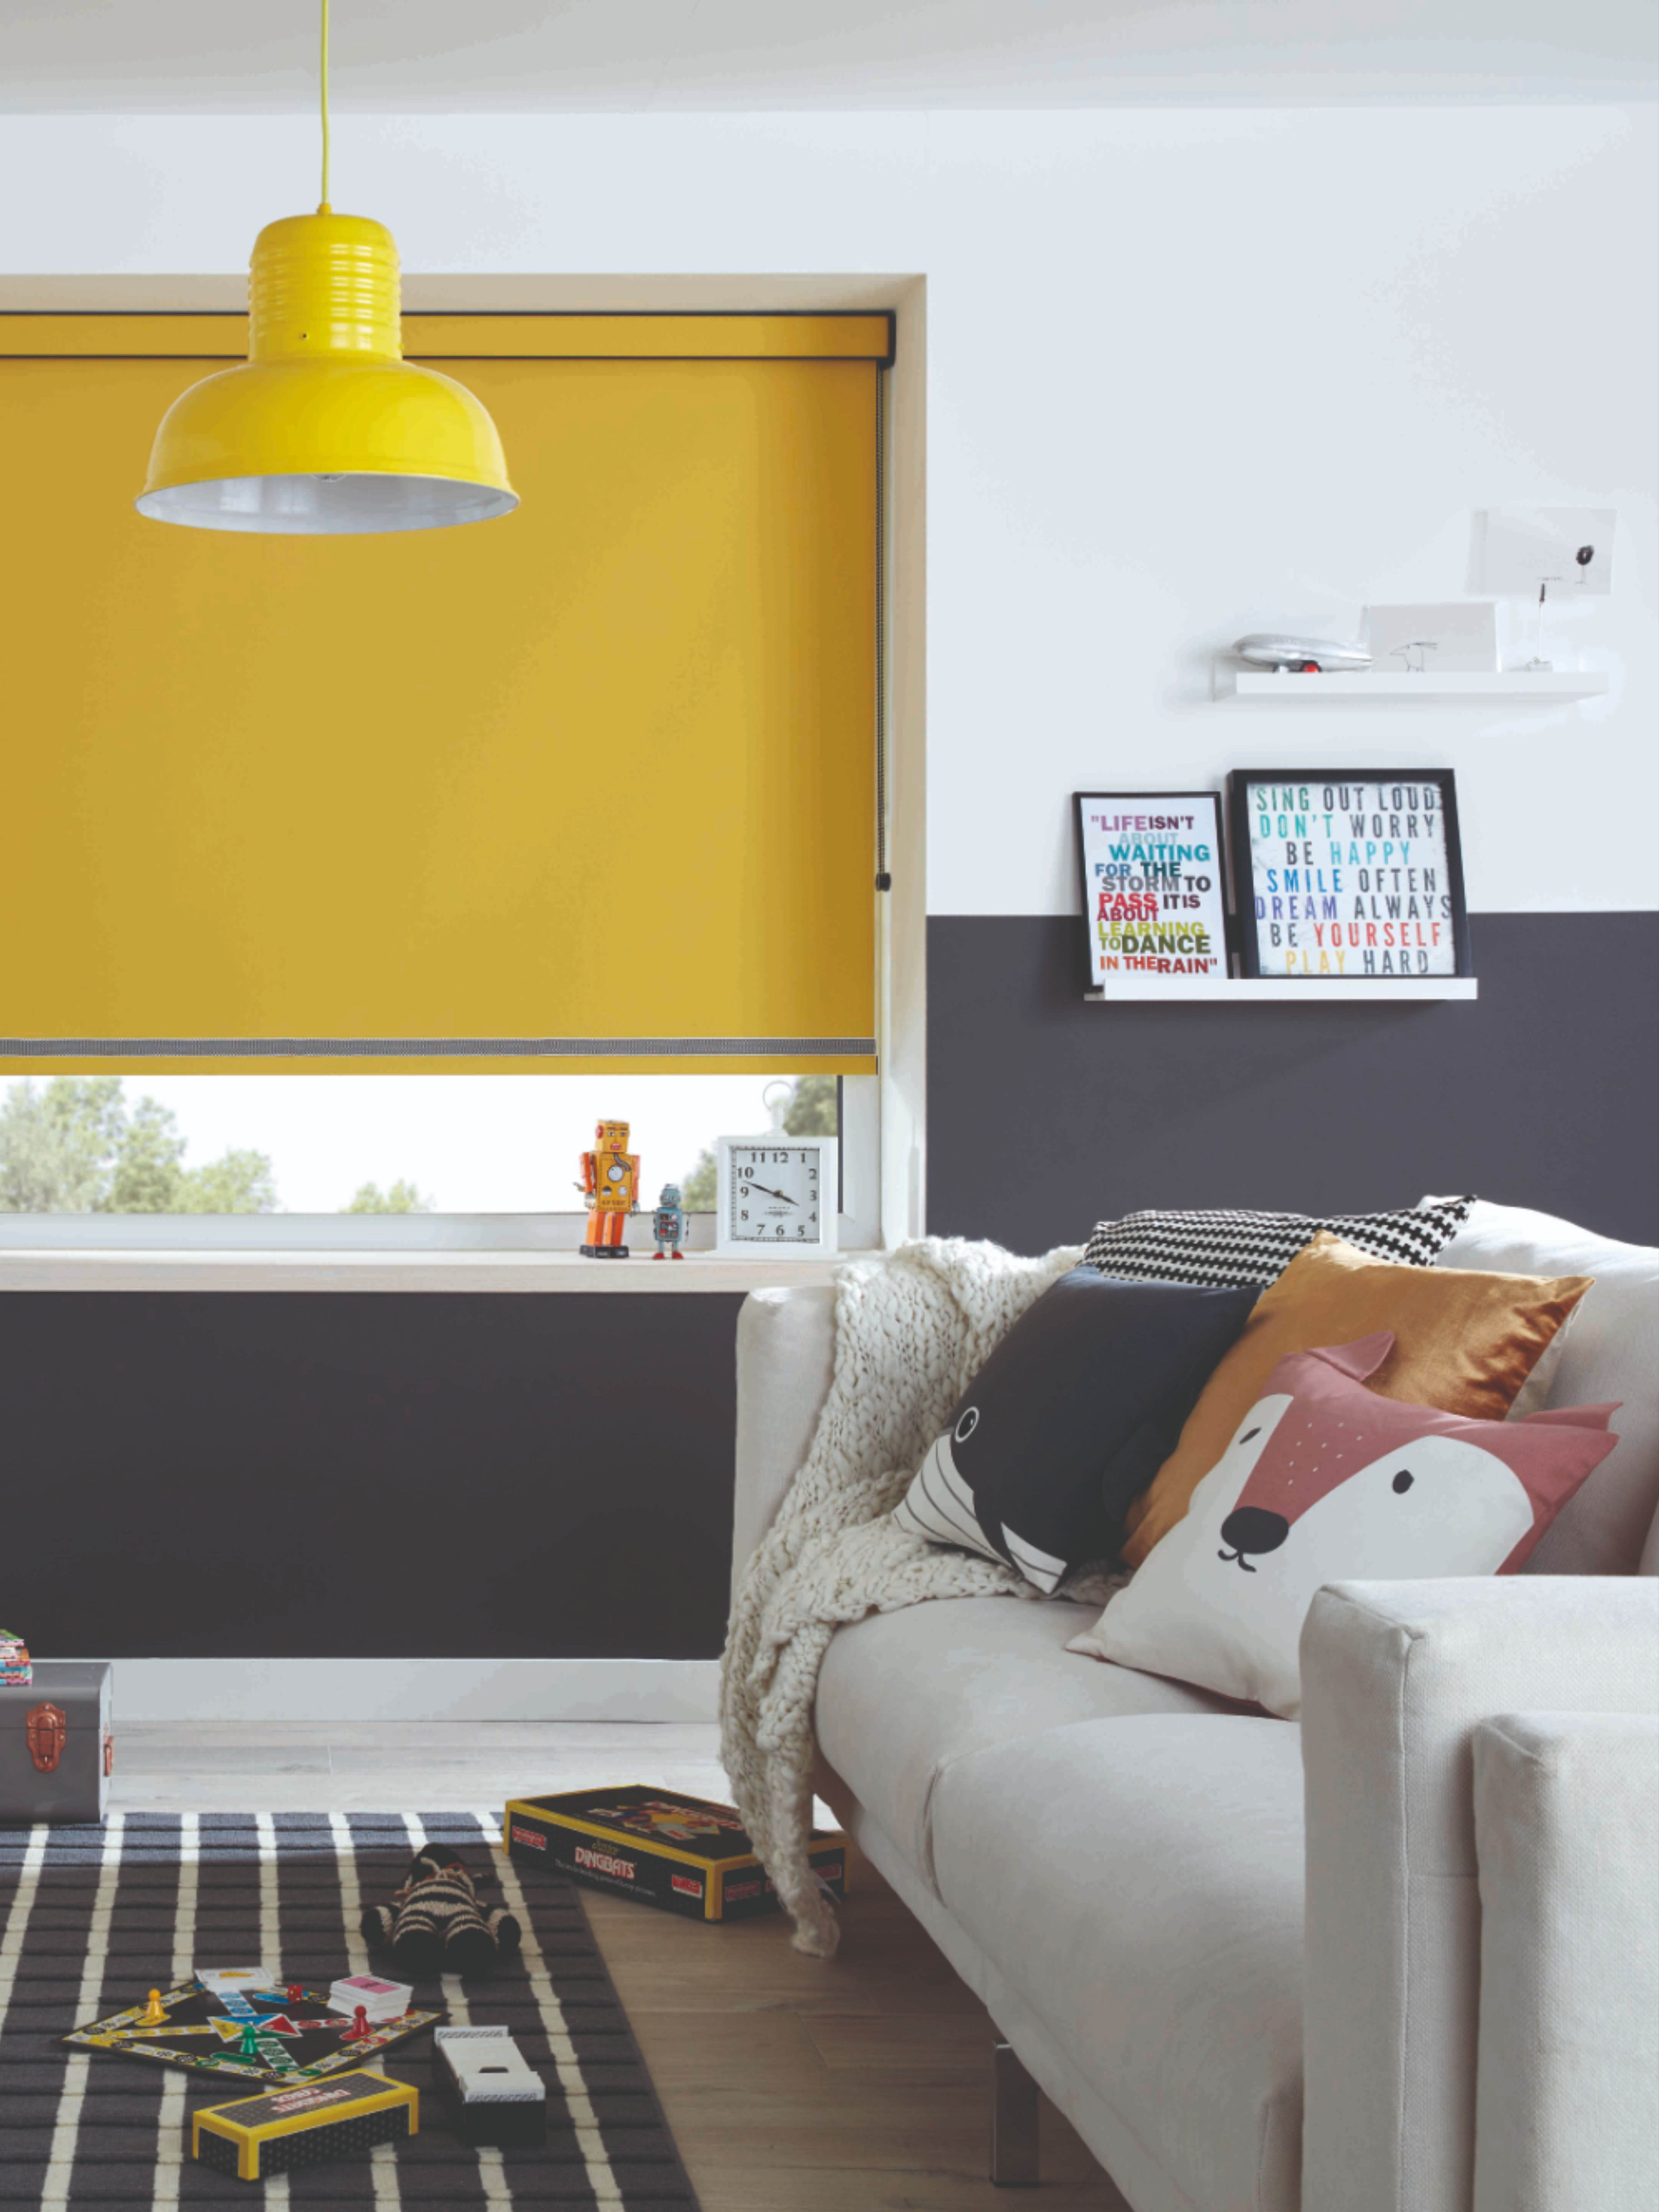 Pin by Swift Direct Blinds on Blackout Blinds in 2020